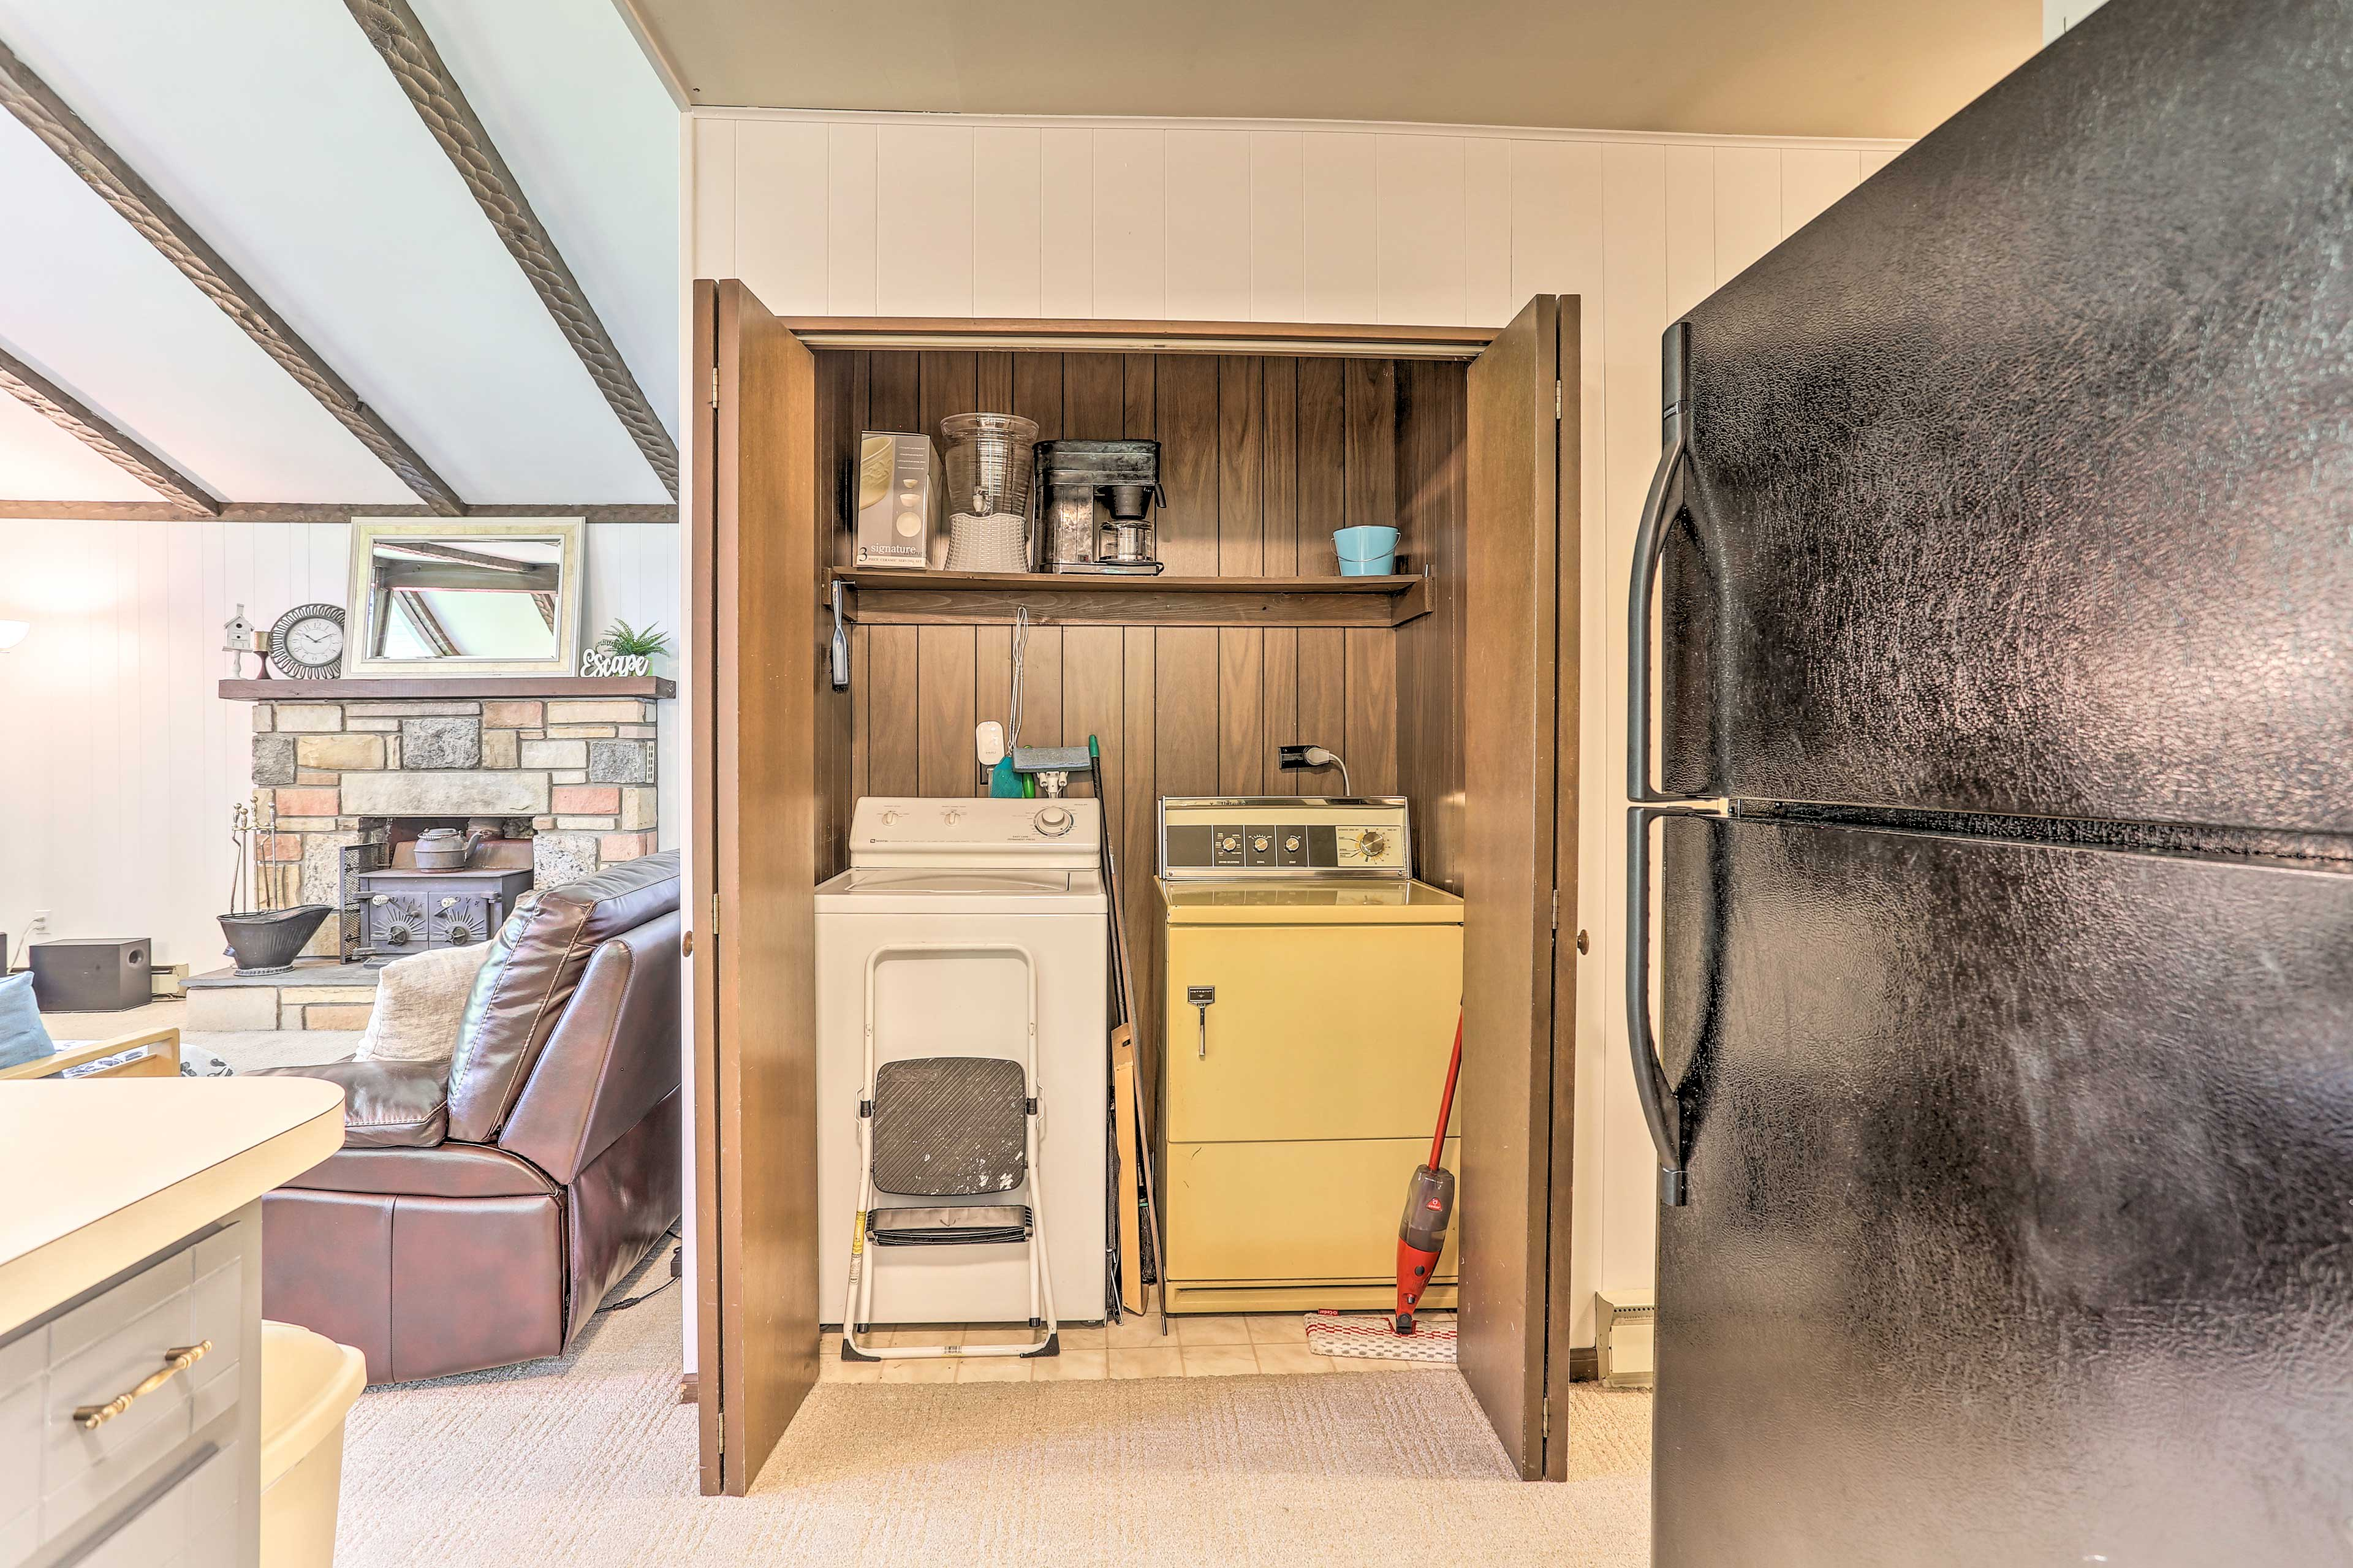 Kitchen | Laundry Machines | Linens/Towels Provided